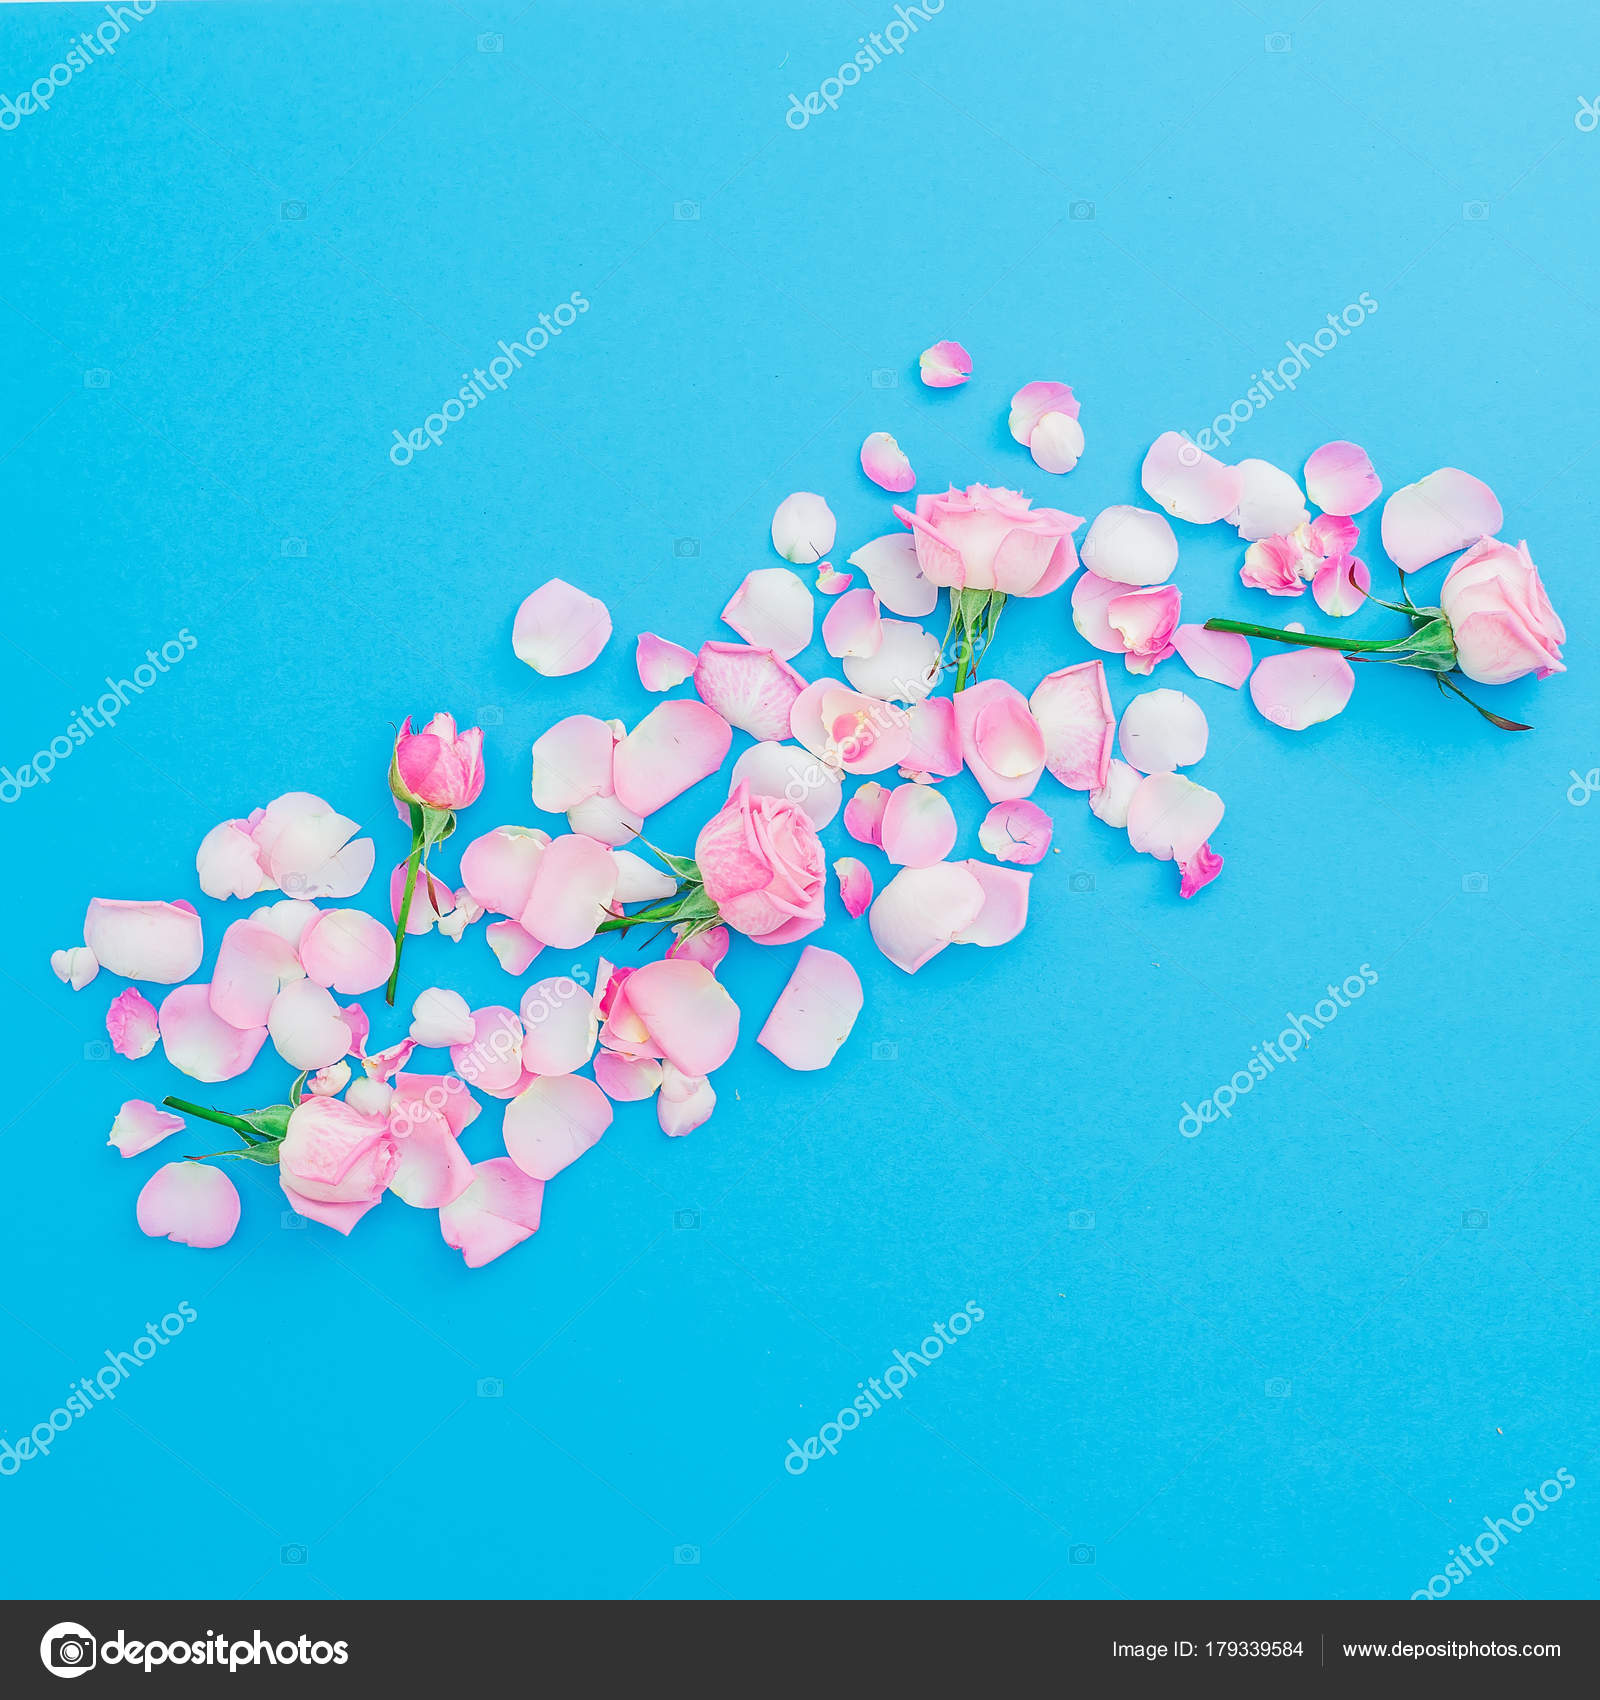 19ab4999ae41b Floral Frame Roses Buds Petals Blue Background Flat Lay Top — Stock Photo